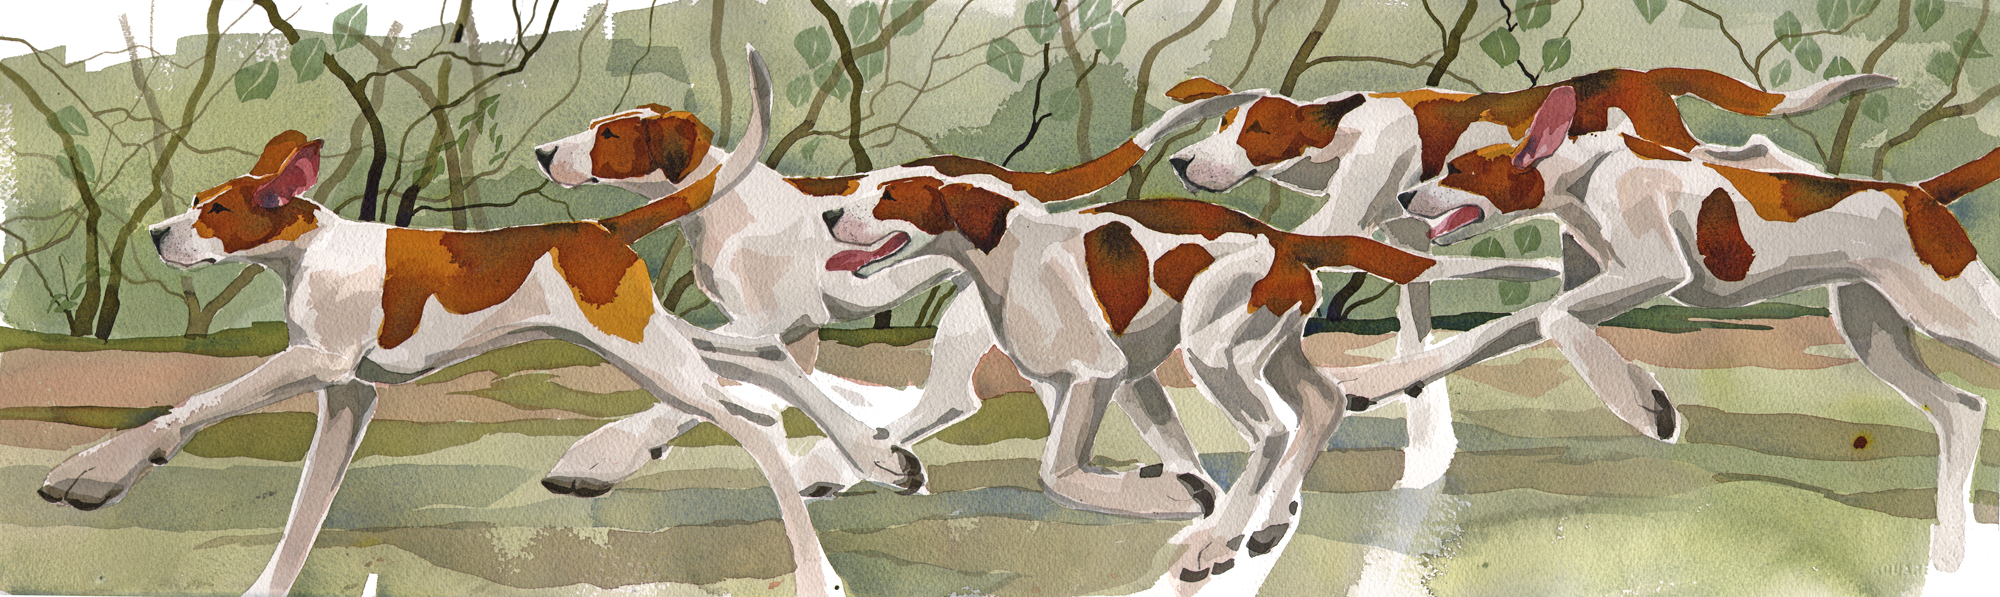 Running Hounds image